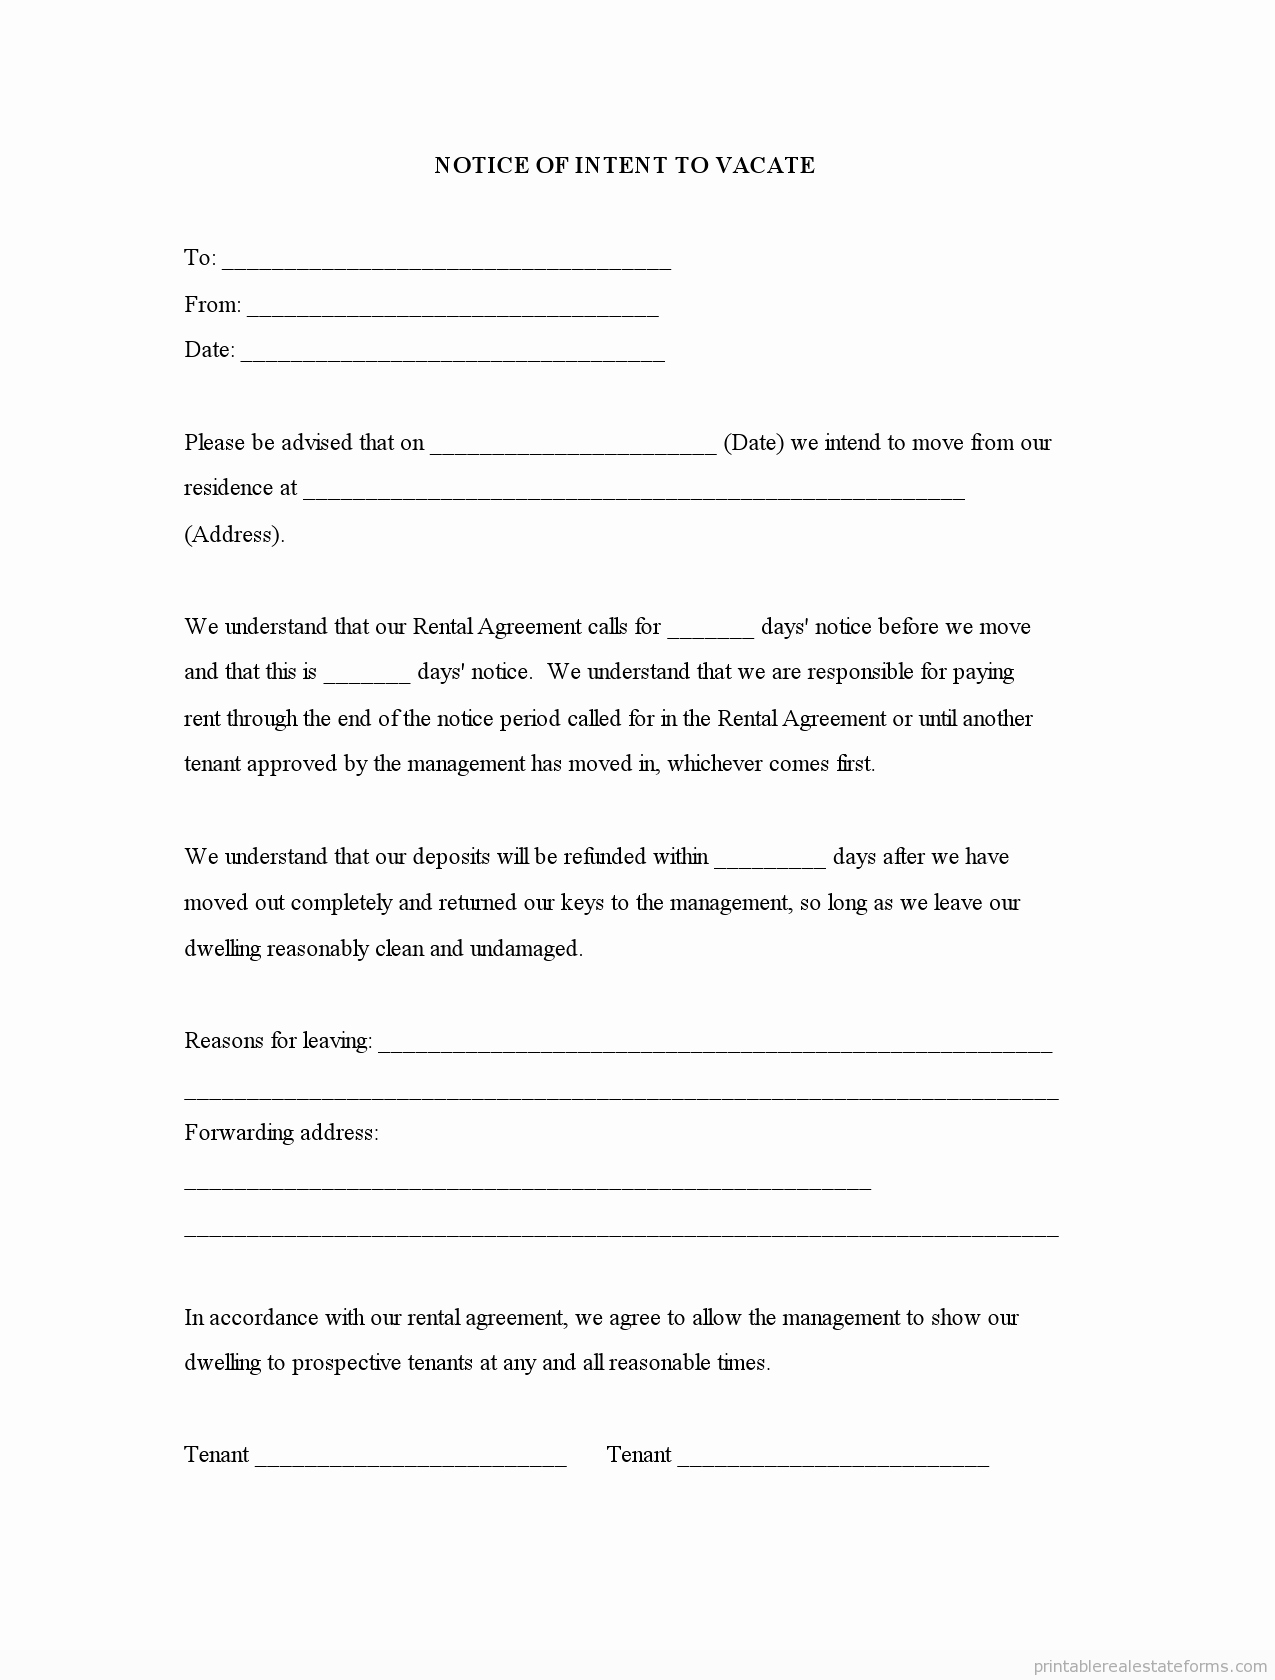 Notice to Vacate Template Elegant Free Printable Notice Of Intent to Vacate form Sample